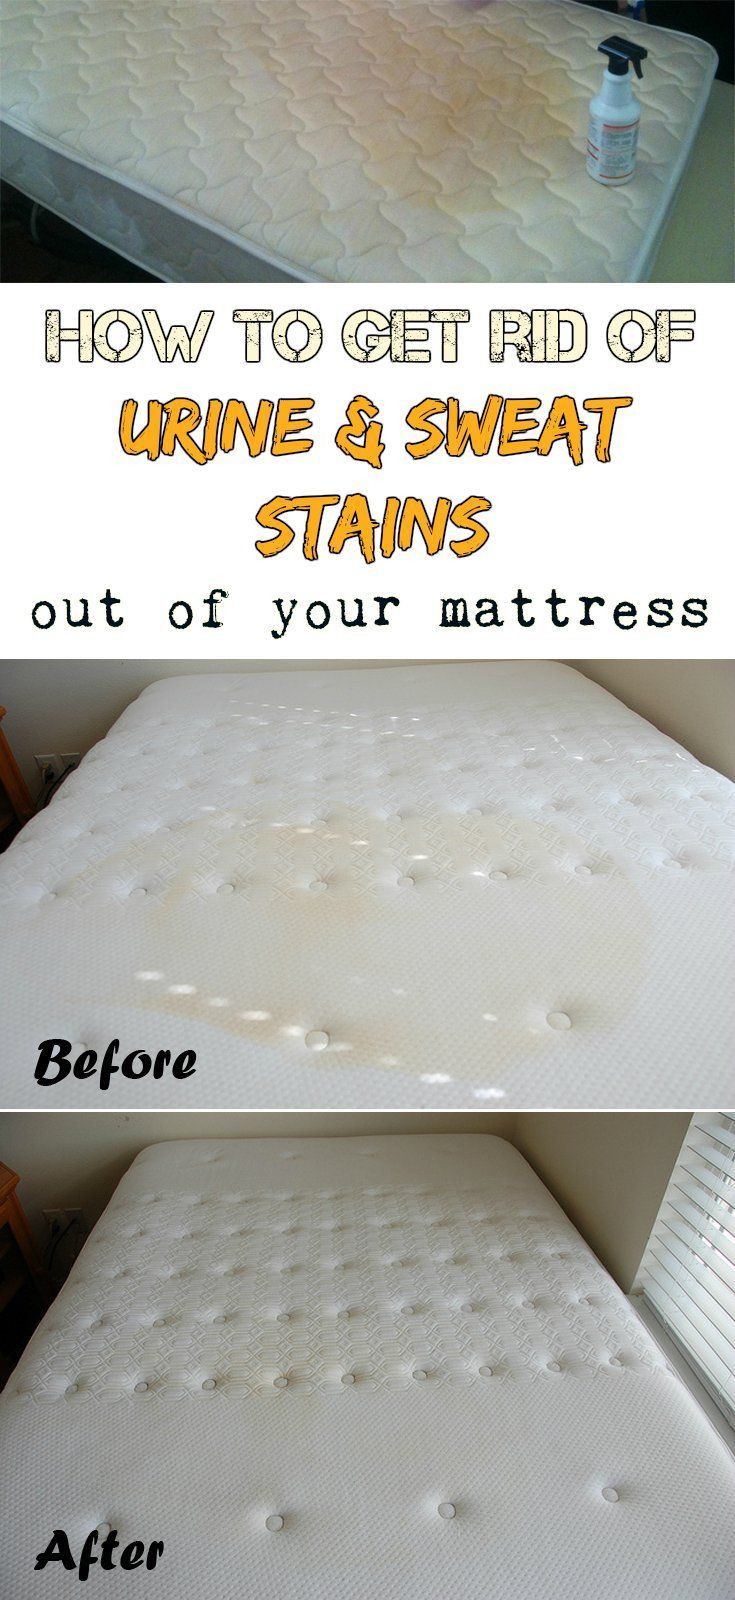 How to get rid of urine and sweat stains out of your mattress